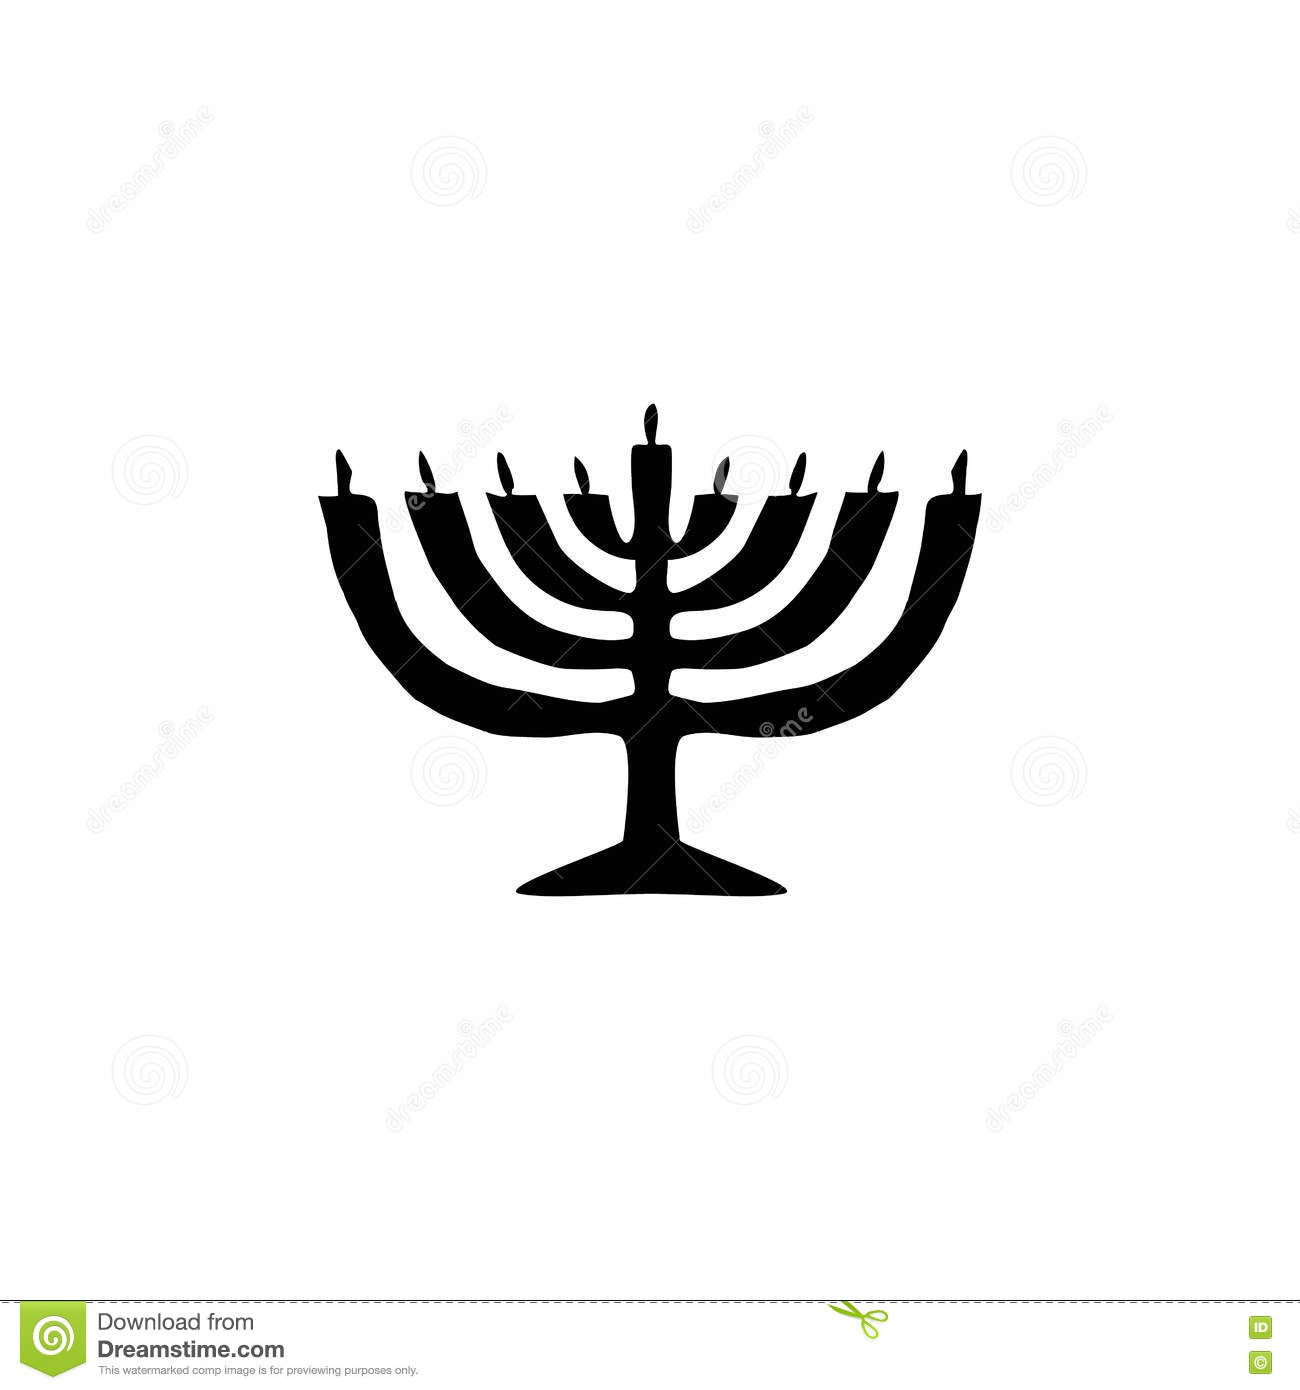 Chanukah candle black silhouette. Jewish religious holiday of Hanukkah. Vector illustration on isolated background